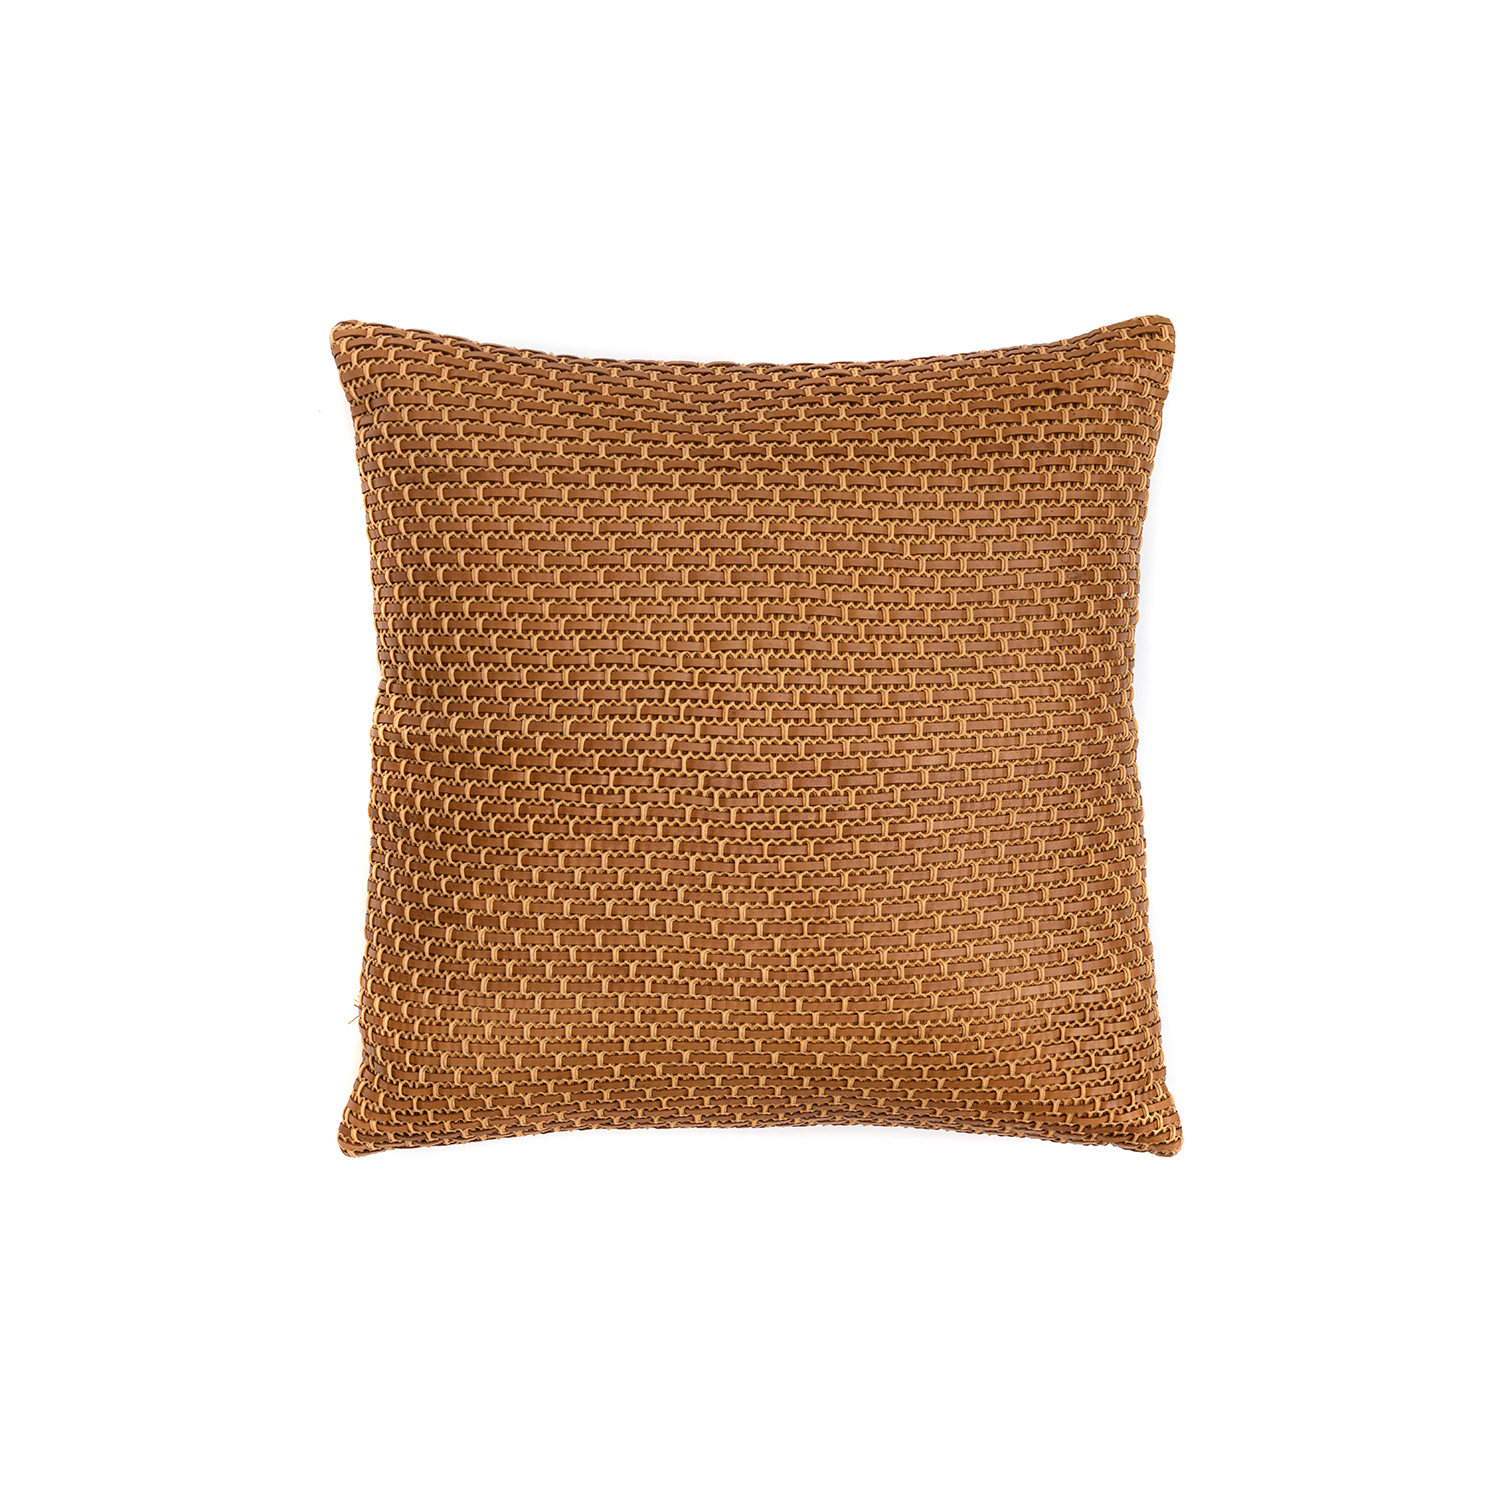 Tela Woven Leather Cushion Square - The Tela Woven Leather Cushion is designed to complement an ambient with a natural and sophisticated feeling. This cushion style is available in pleated leather or pleated suede leather. Elisa Atheniense woven handmade leather cushions are specially manufactured in Brazil using an exclusive treated leather that brings the soft feel touch to every single piece.   The front panel is handwoven in leather and the back panel is 100% Pes, made in Brazil.  The inner cushion is available in Hollow Fibre and European Duck Feathers, made in the UK.  Please enquire for more information and see colour chart for reference.   | Matter of Stuff